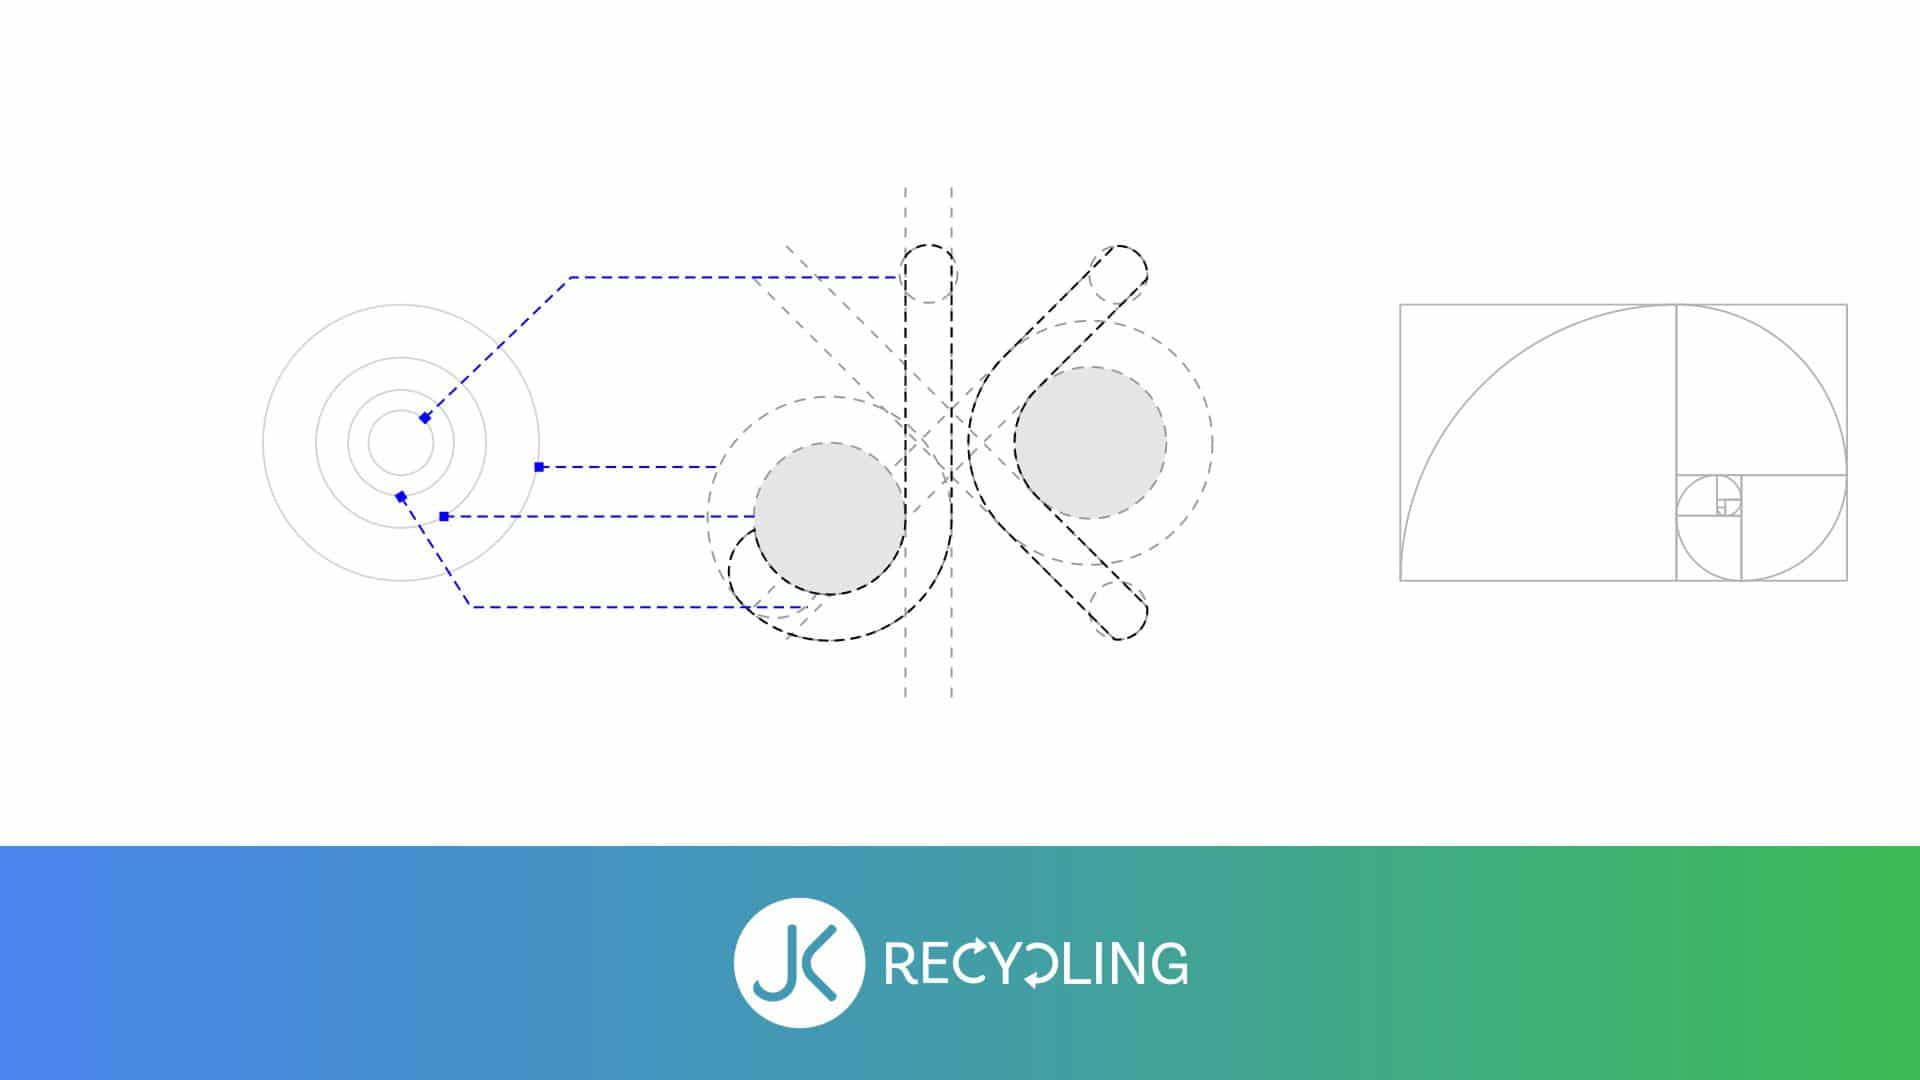 Recycling Industry Logo Design With Golden Ratio 02